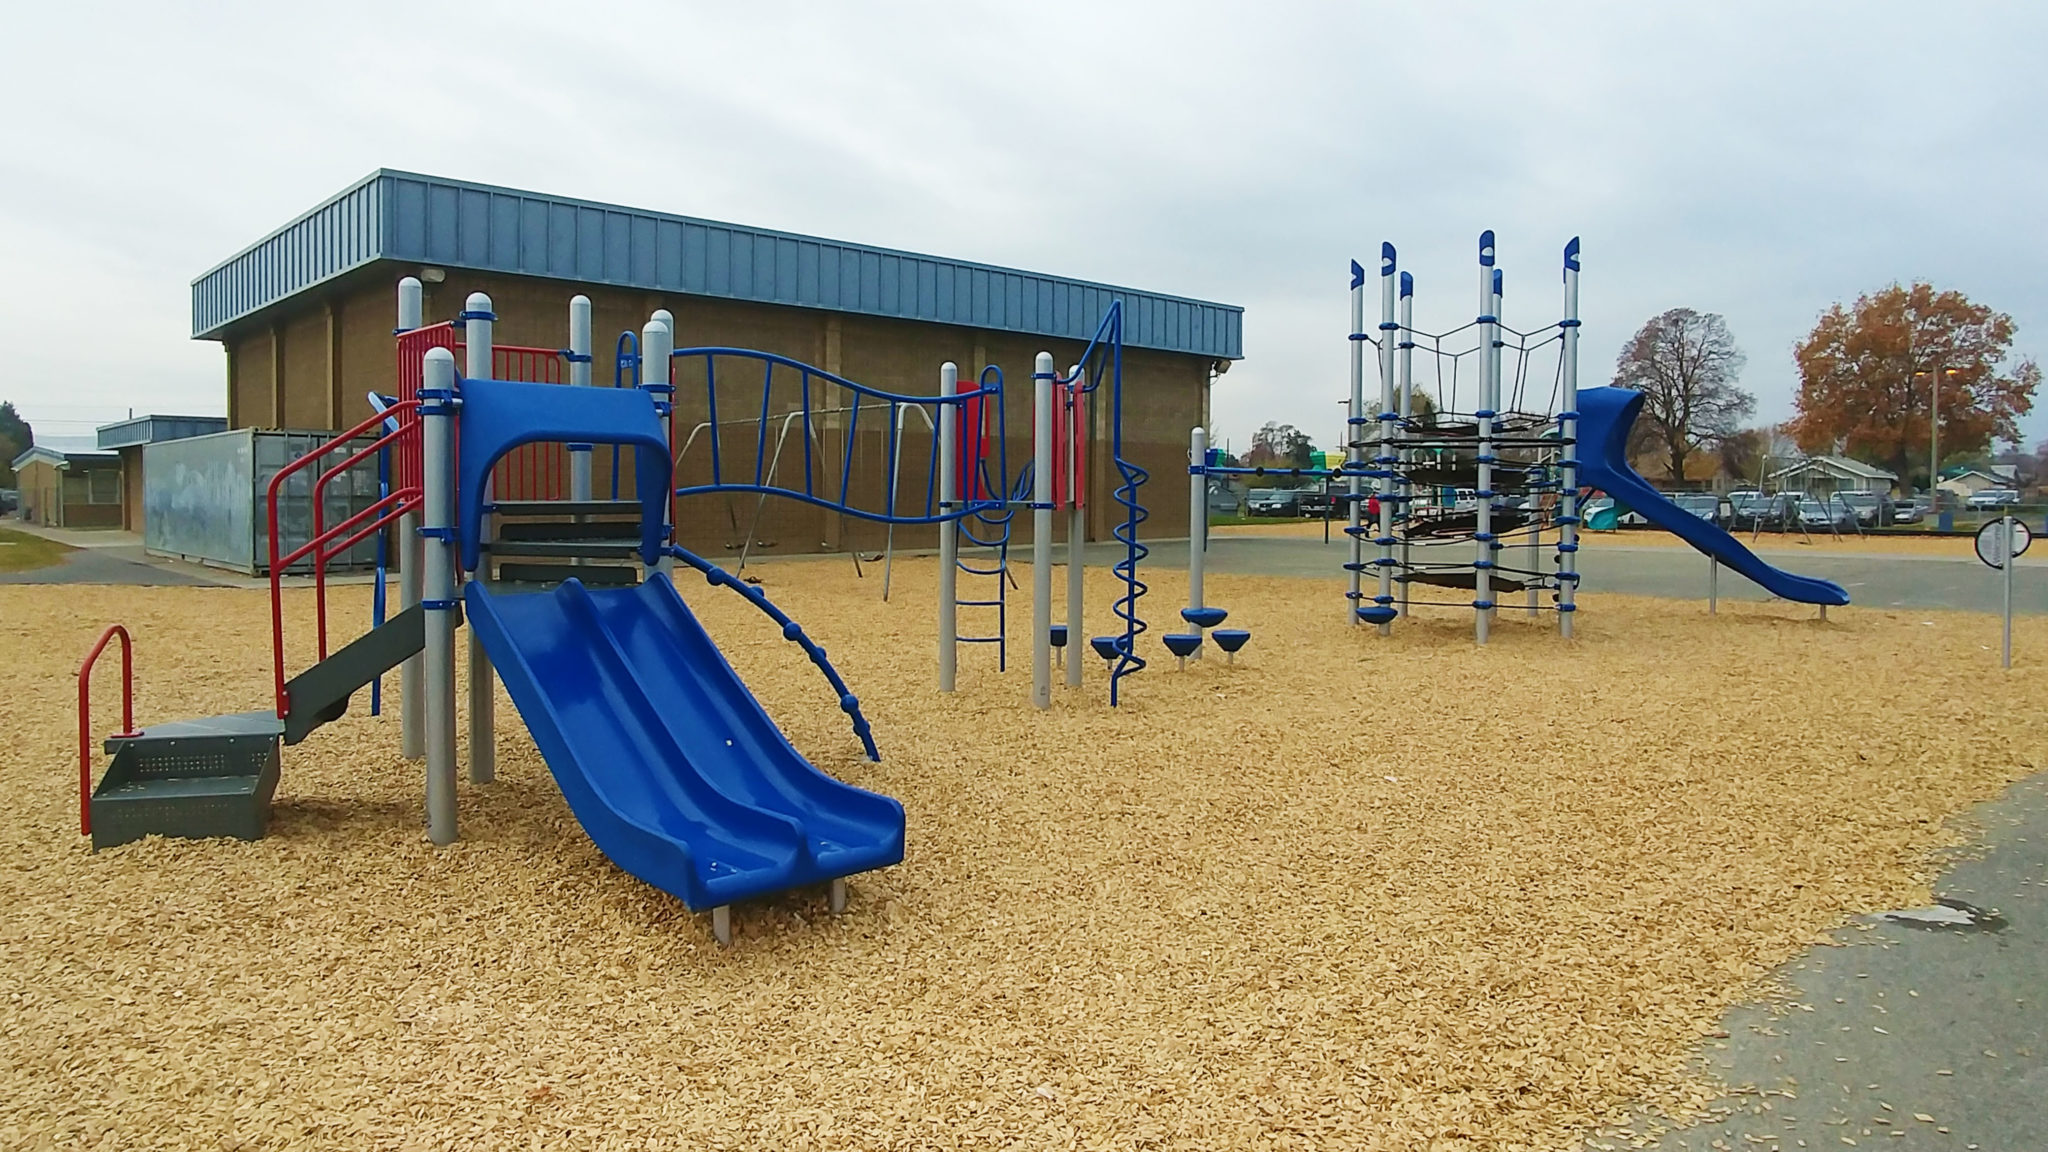 Adams Elementary School Playground